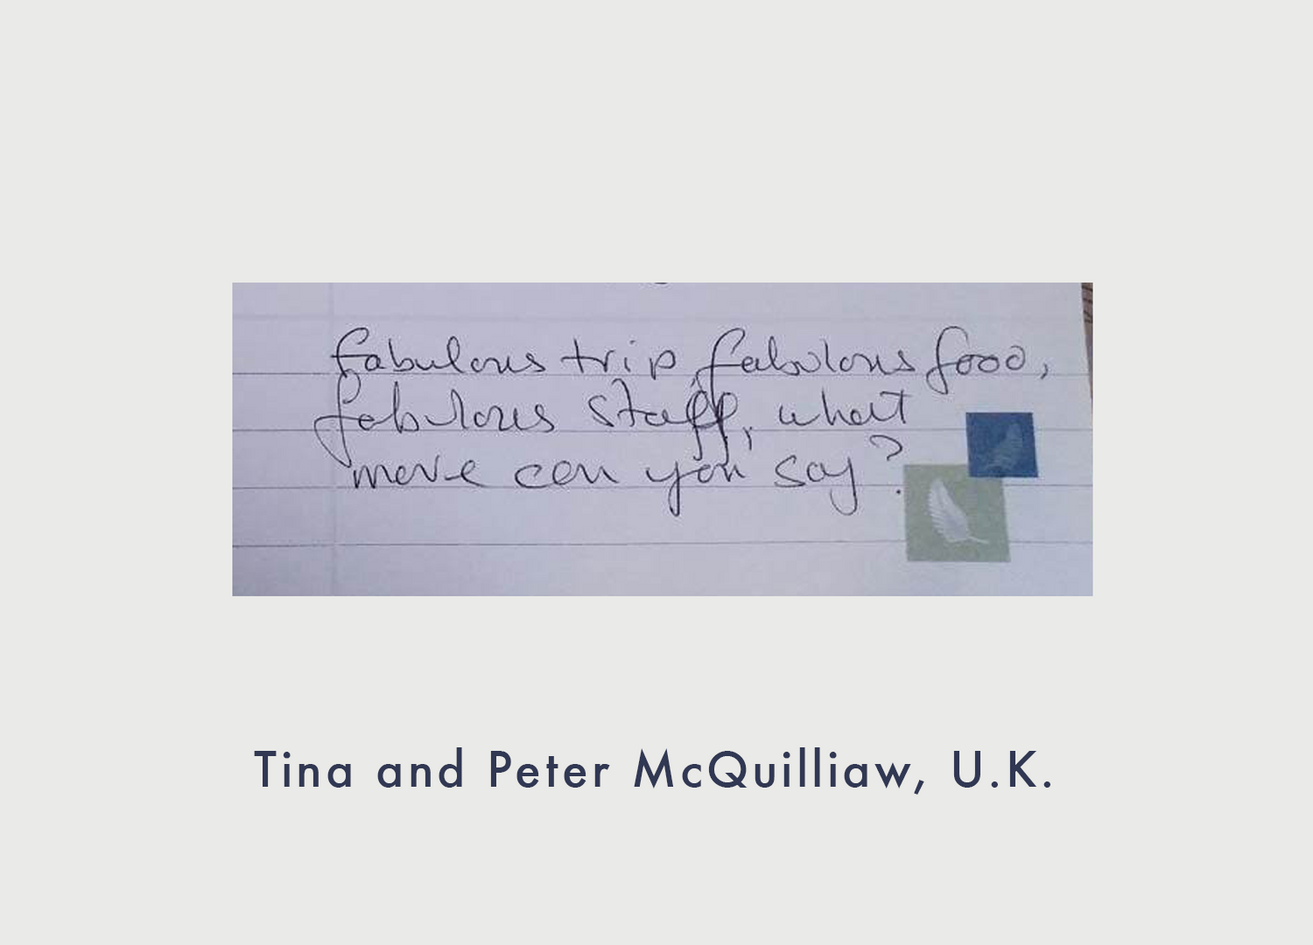 tina and peter mcquilliaw uk sukapha.png